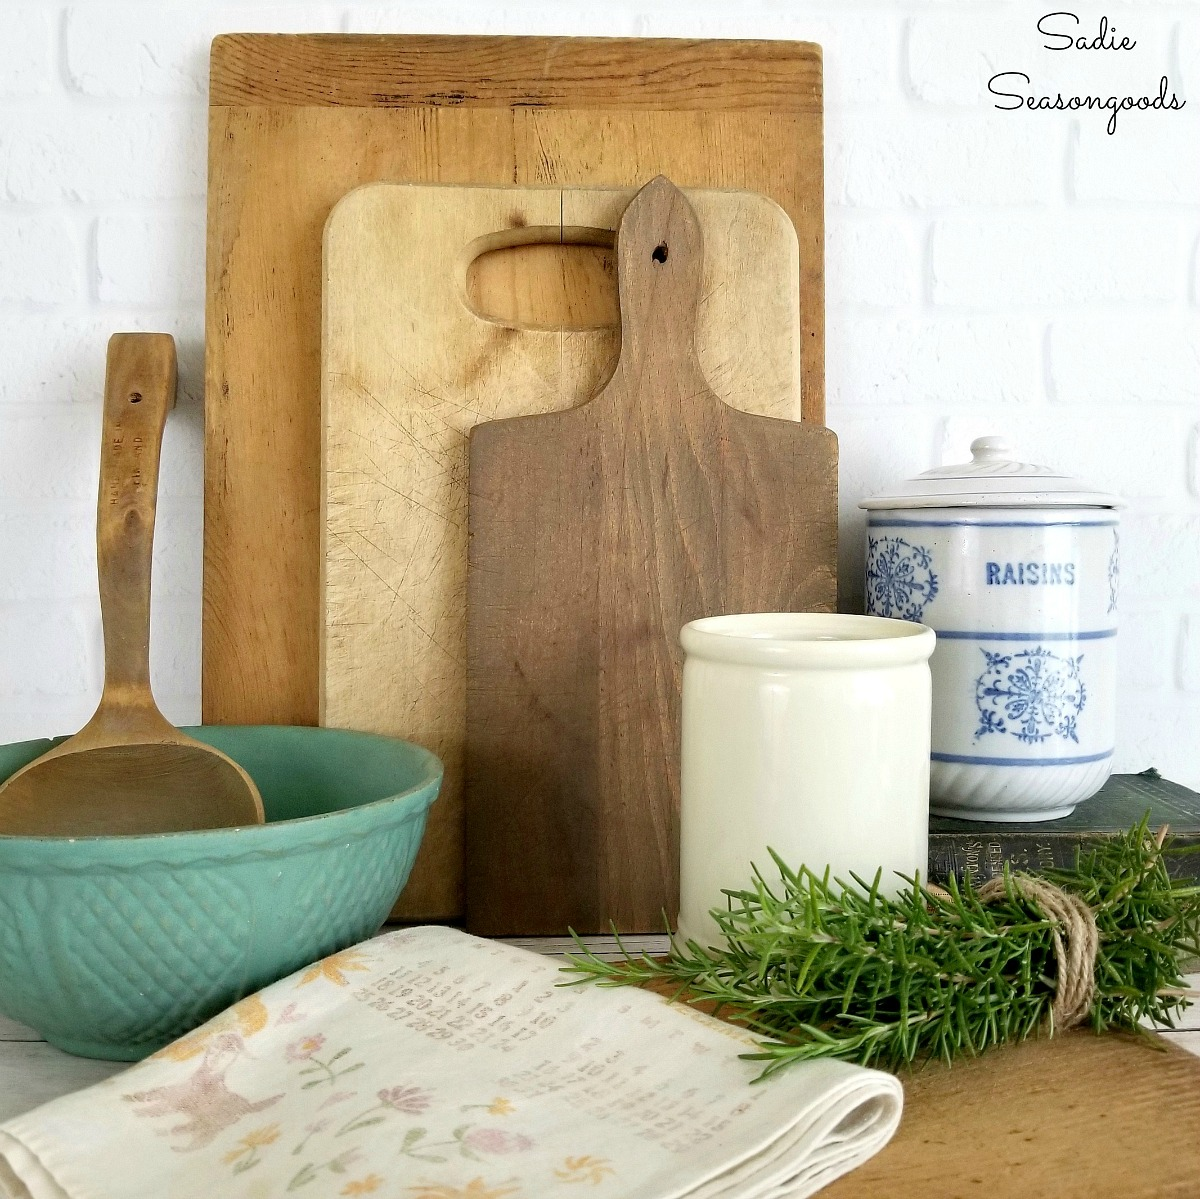 French Farmhouse Decor or Cheap Farmhouse Decor from the Thrift Store